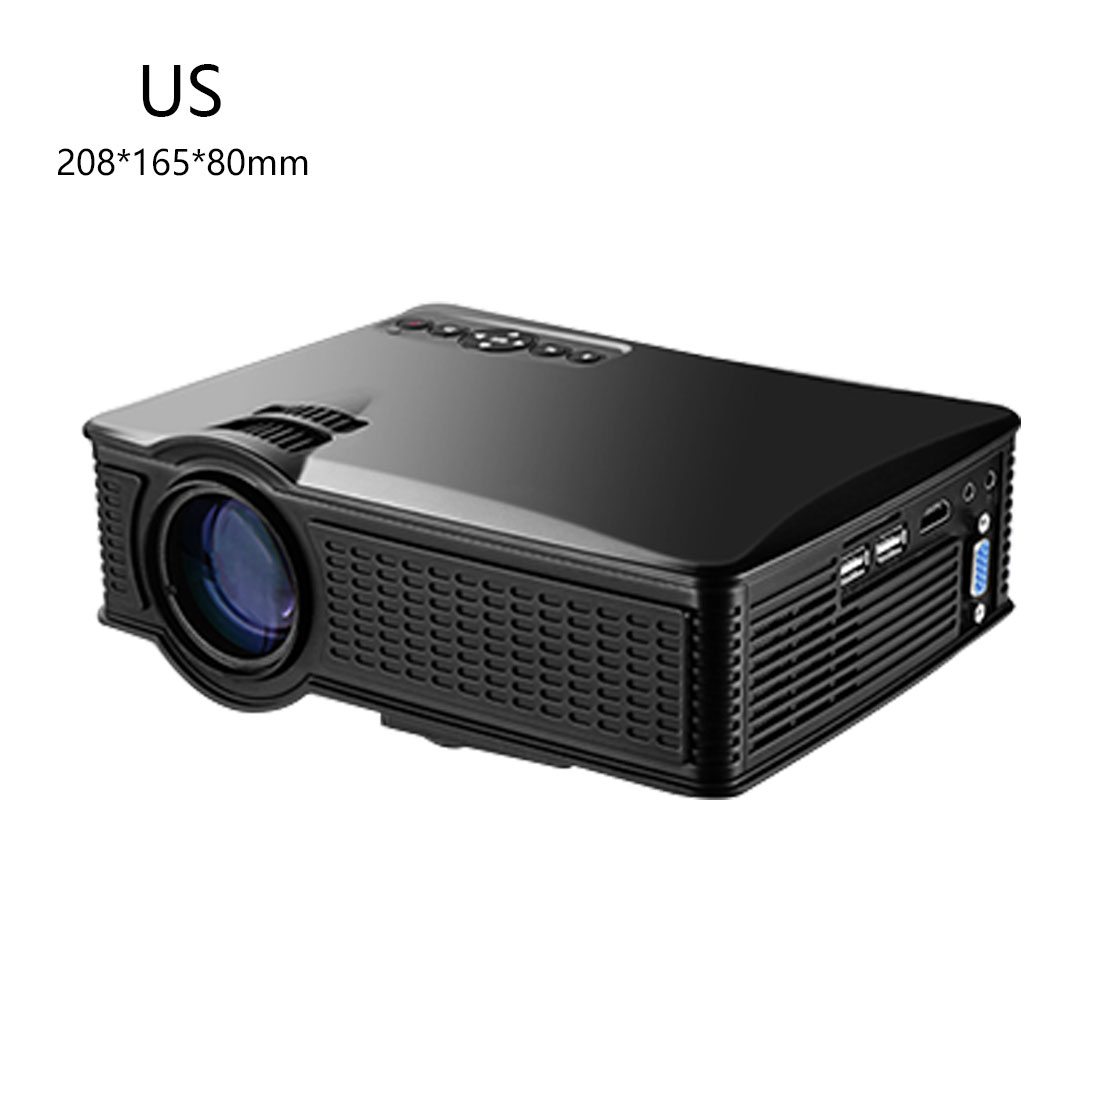 centechia New LY40 LCD Projector 800X480 US Plug Support 1080P With HDMI USB AV SD Input For Private Theater Children Education